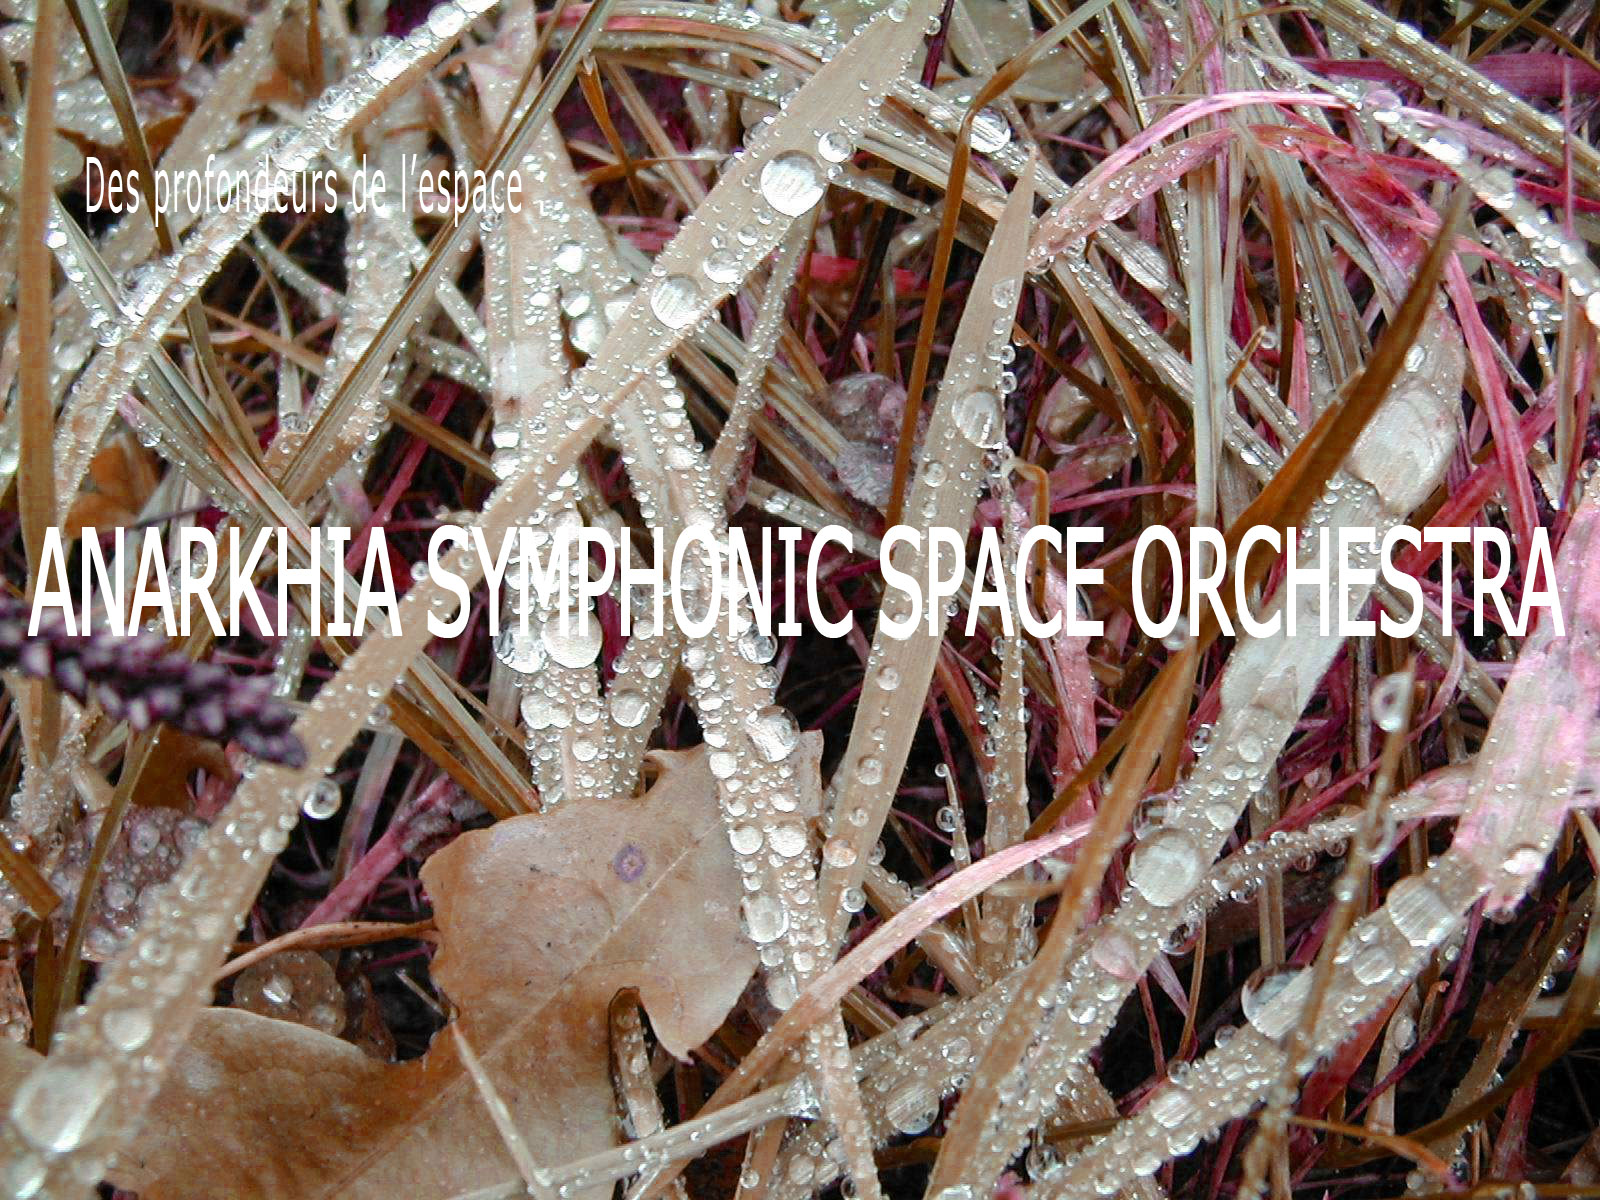 Anarkhia symphonic space orchestra = POSTER